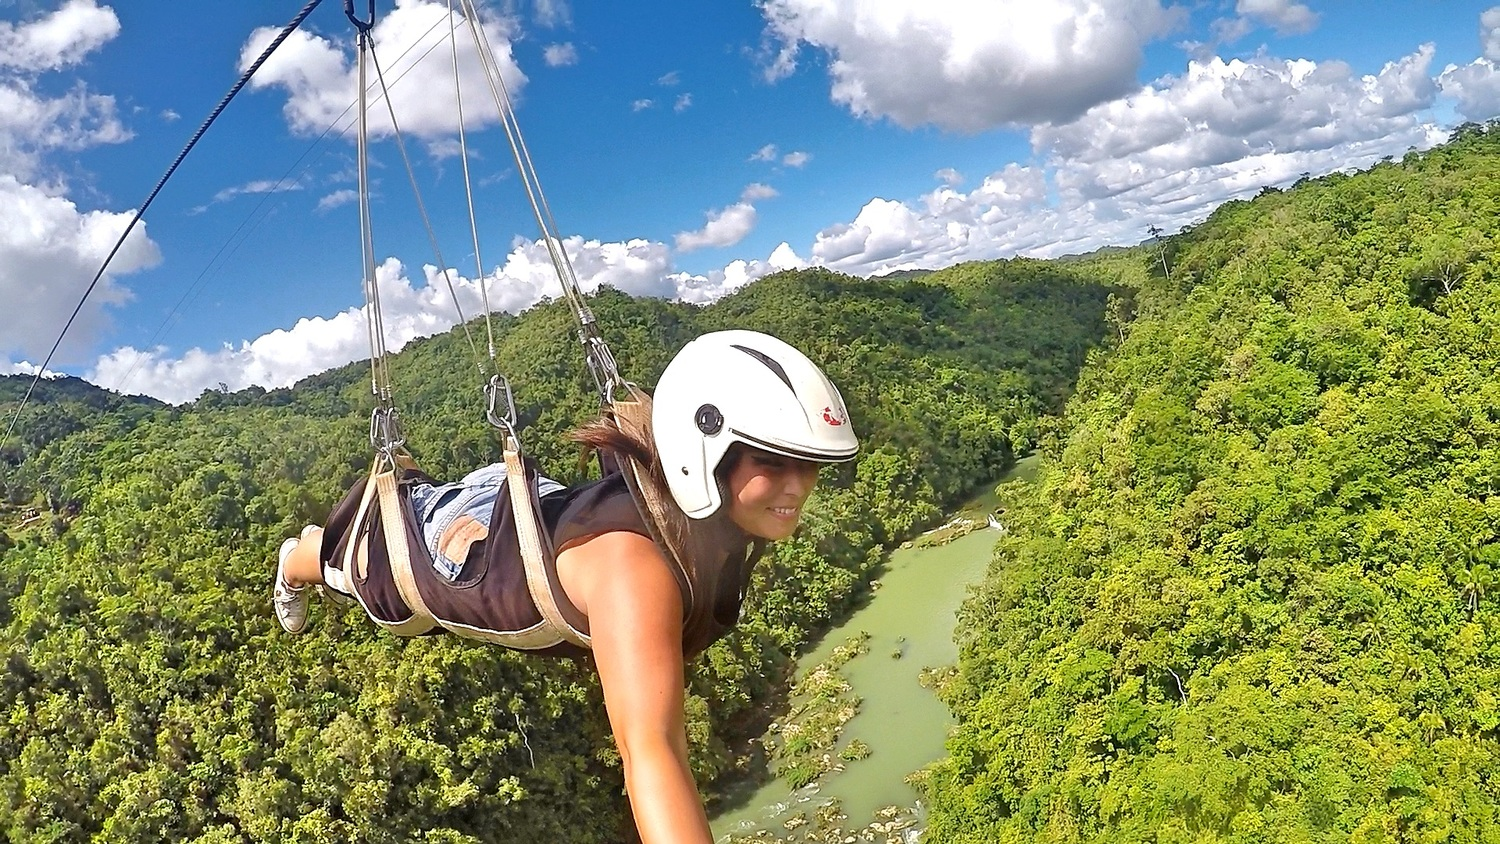 Flying through Jungles of Loboc, Bohol Island, Philippines